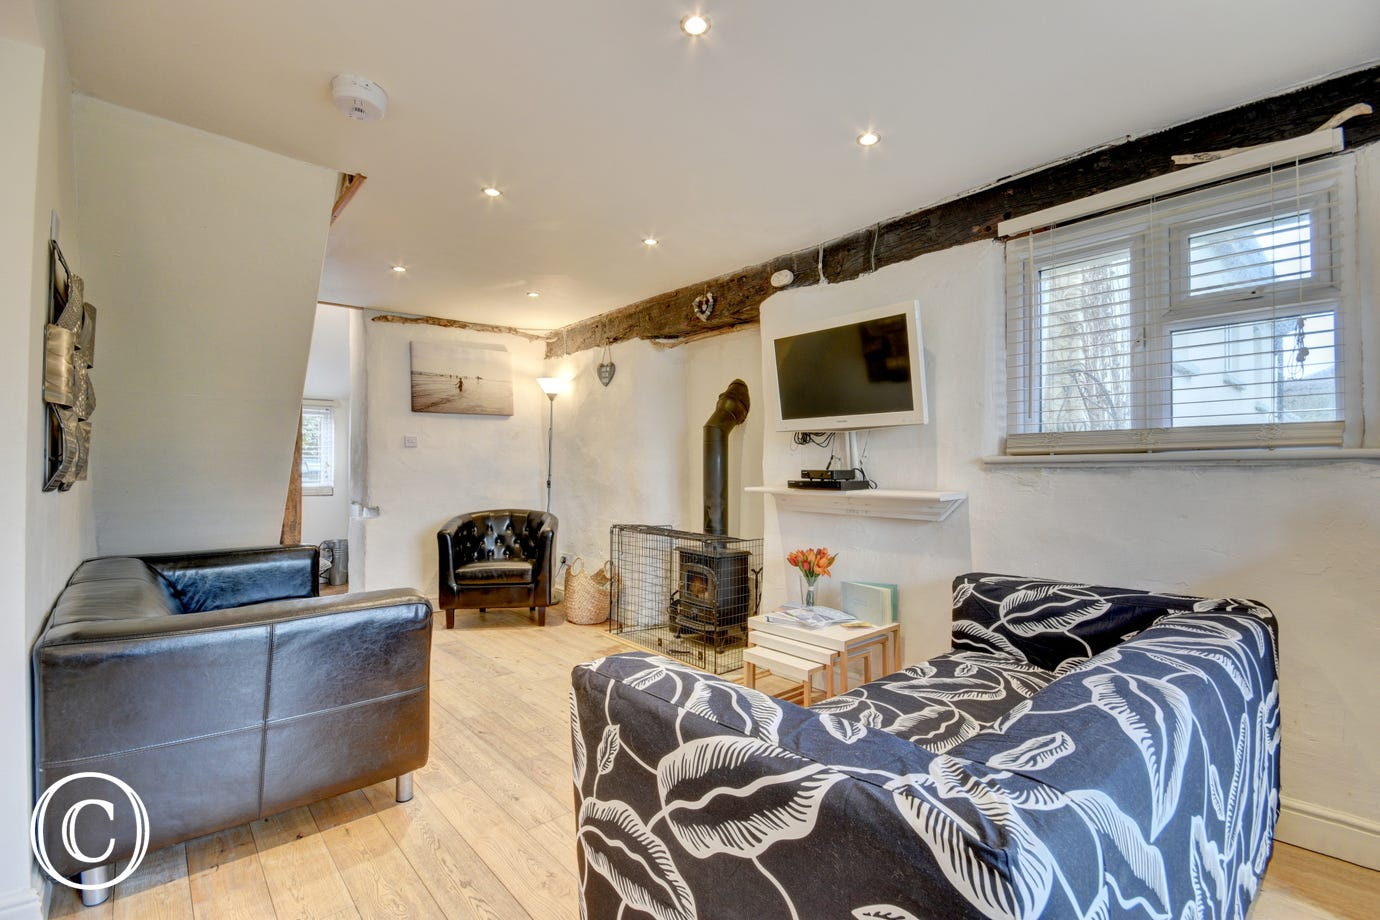 The cottage has open plan living on the ground floor with real wood floors